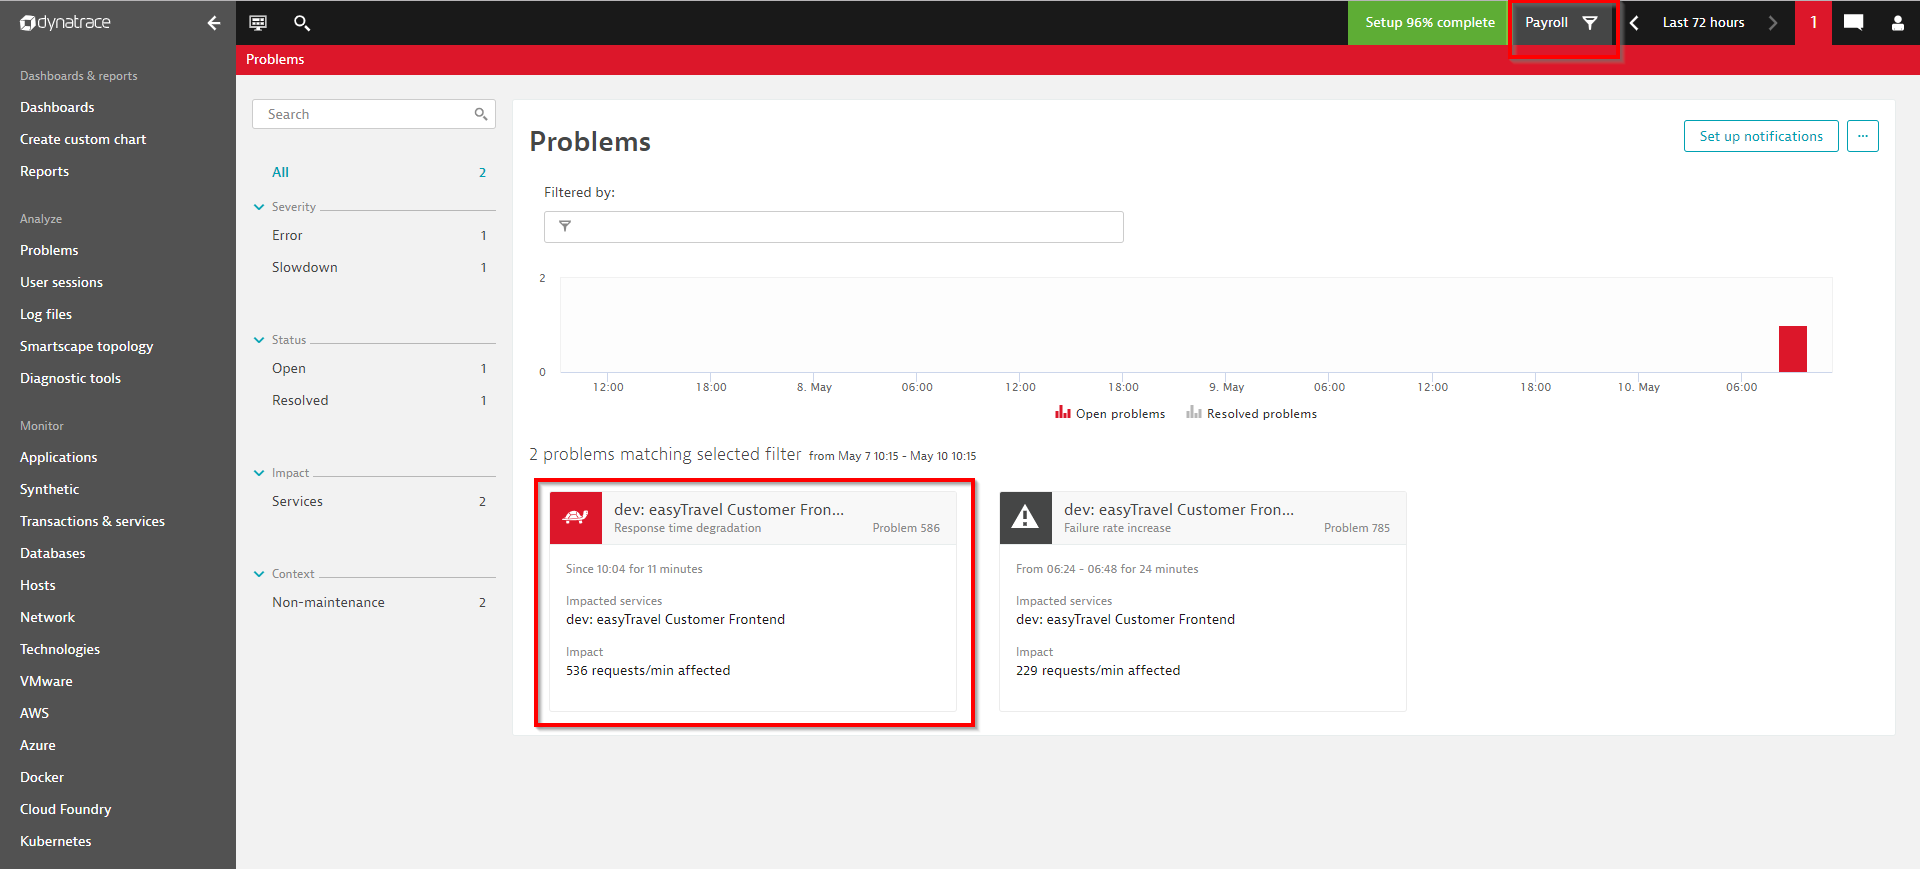 Click the global problem indicator to go to the Problems dashboard for the selected management zone